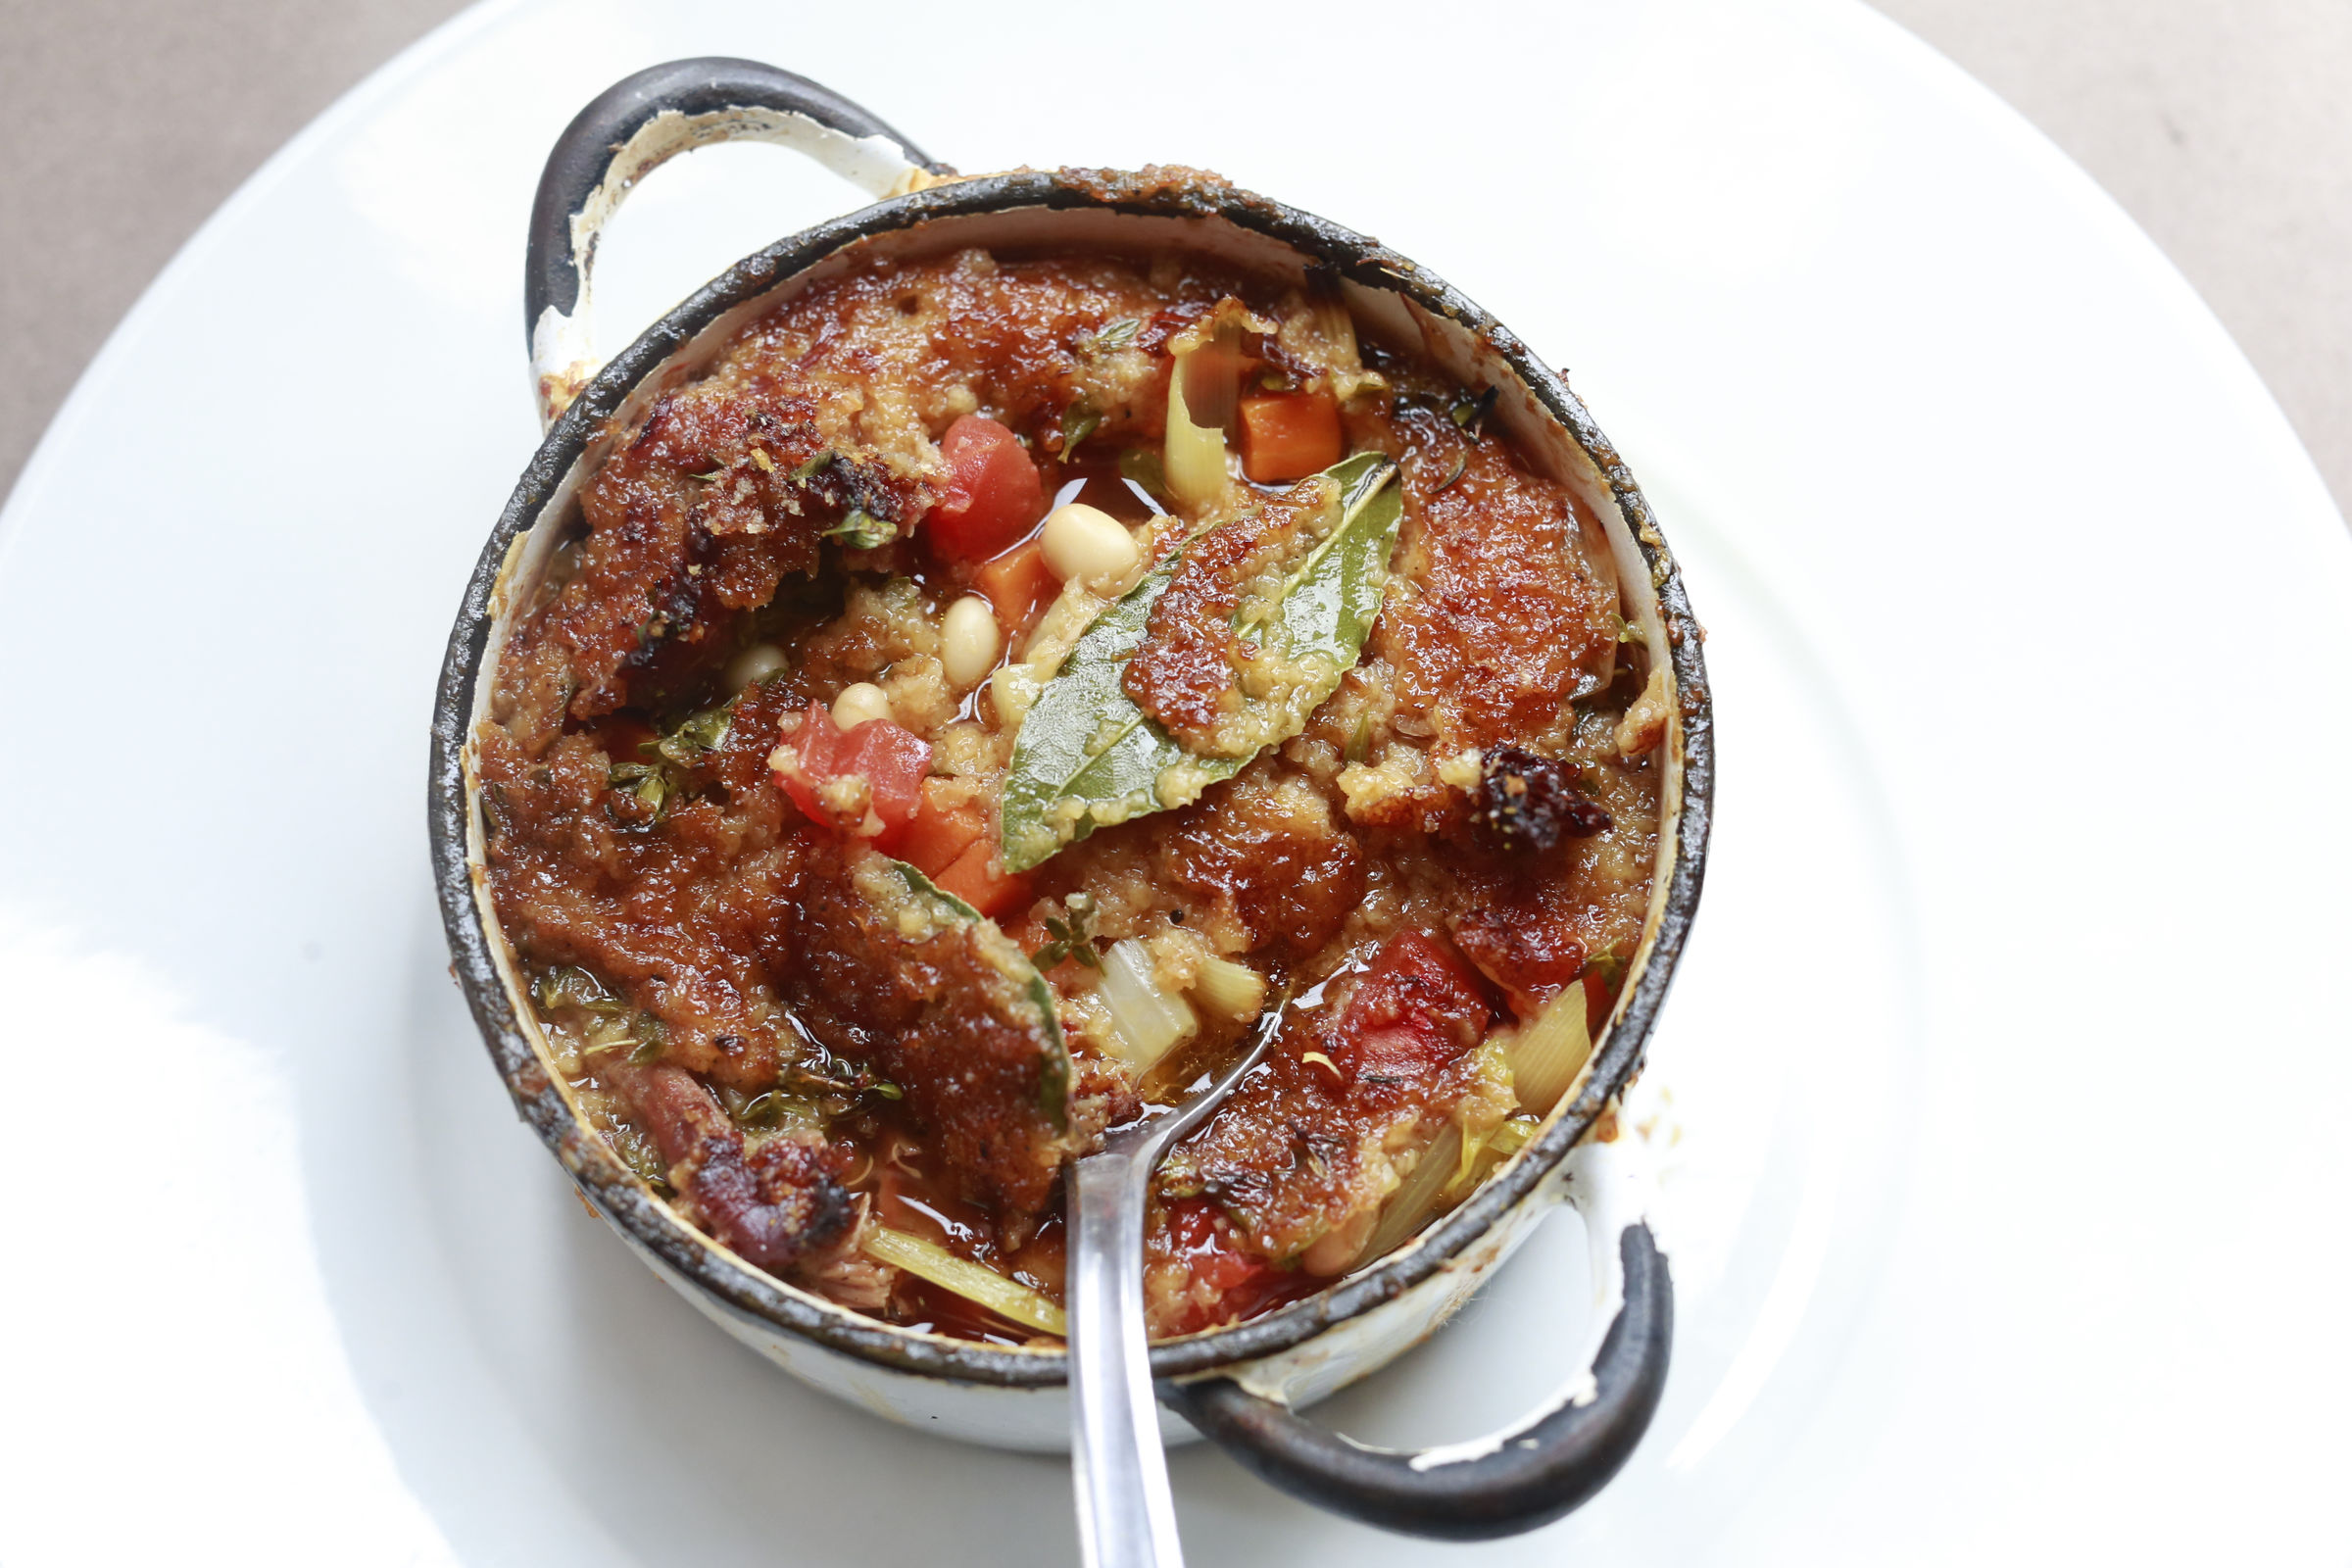 The lamb cassoulet crock at Majolica in Phoenixville.